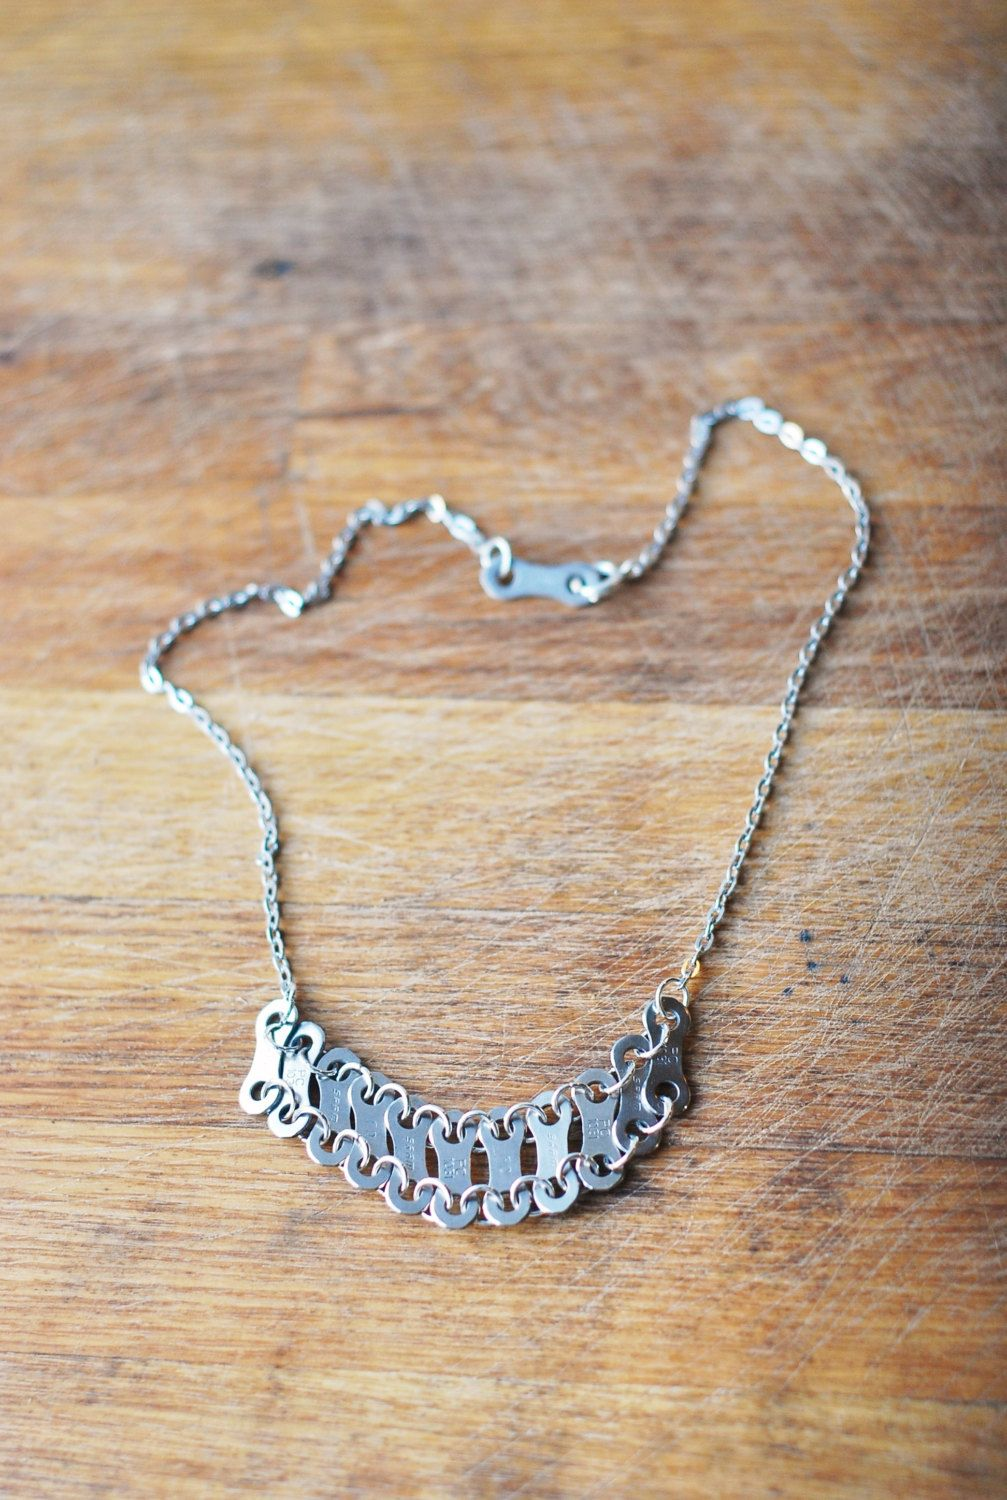 Glam Bike Chain Necklace /// Upcycled /// Bicycle Gift by KatiesBike on Etsy https://www.etsy.com/listing/167645530/glam-bike-chain-necklace-upcycled